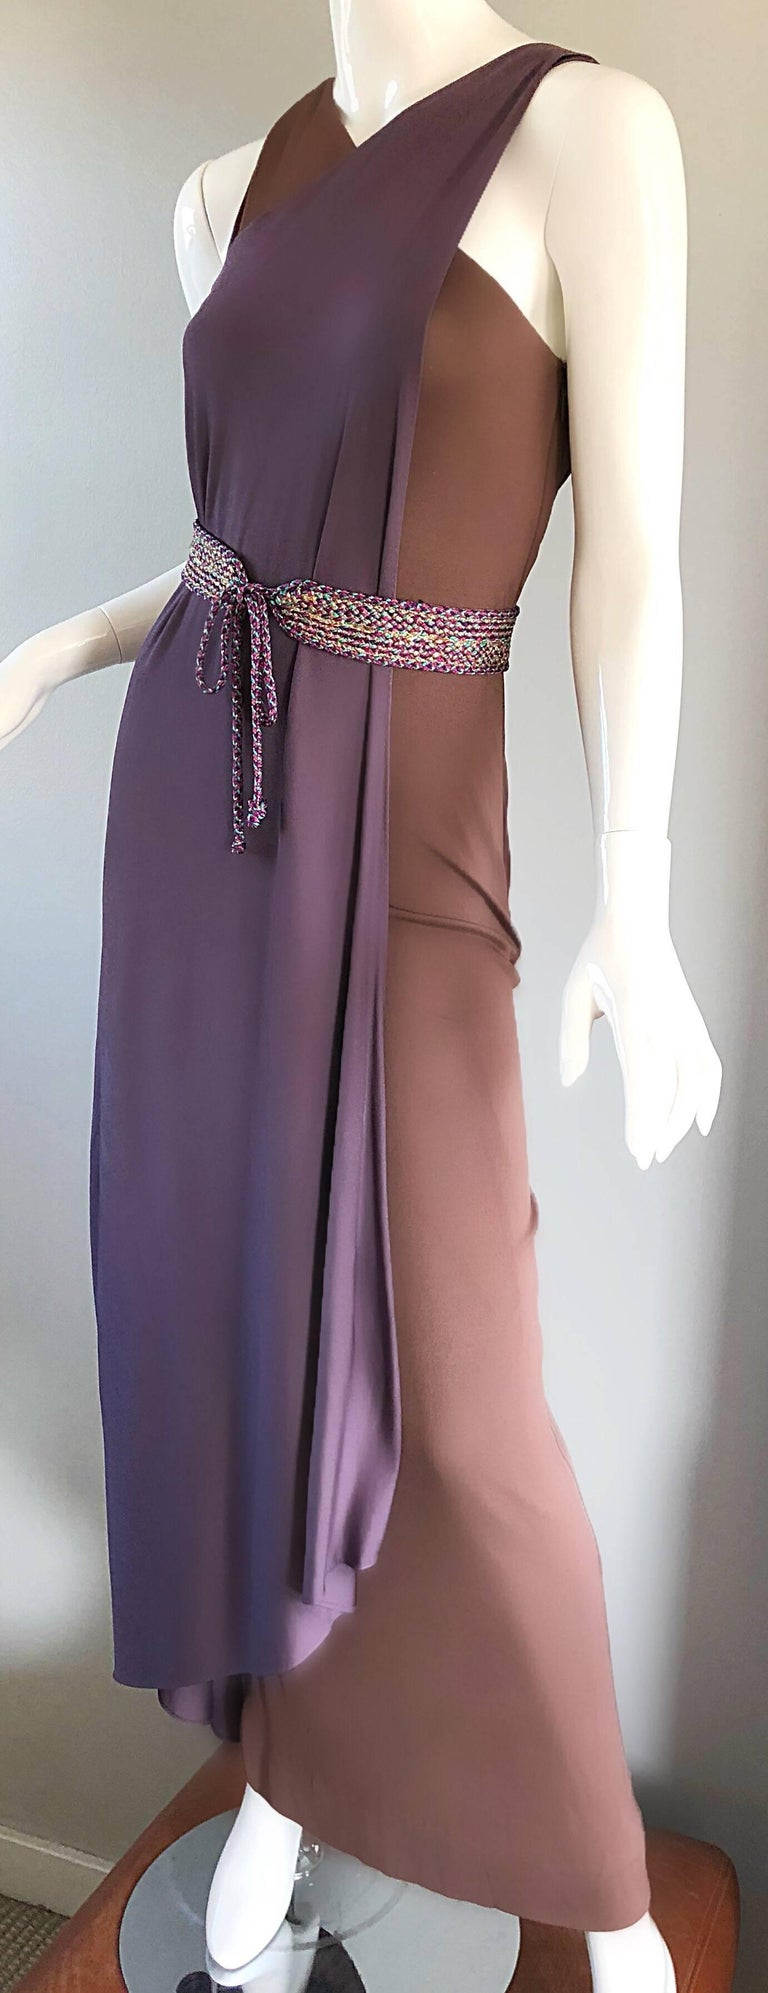 Vintage Bill Blass 1970s Purple + Brown Grecian Inspired Silk Jersey Belted Gown In Excellent Condition For Sale In San Francisco, CA